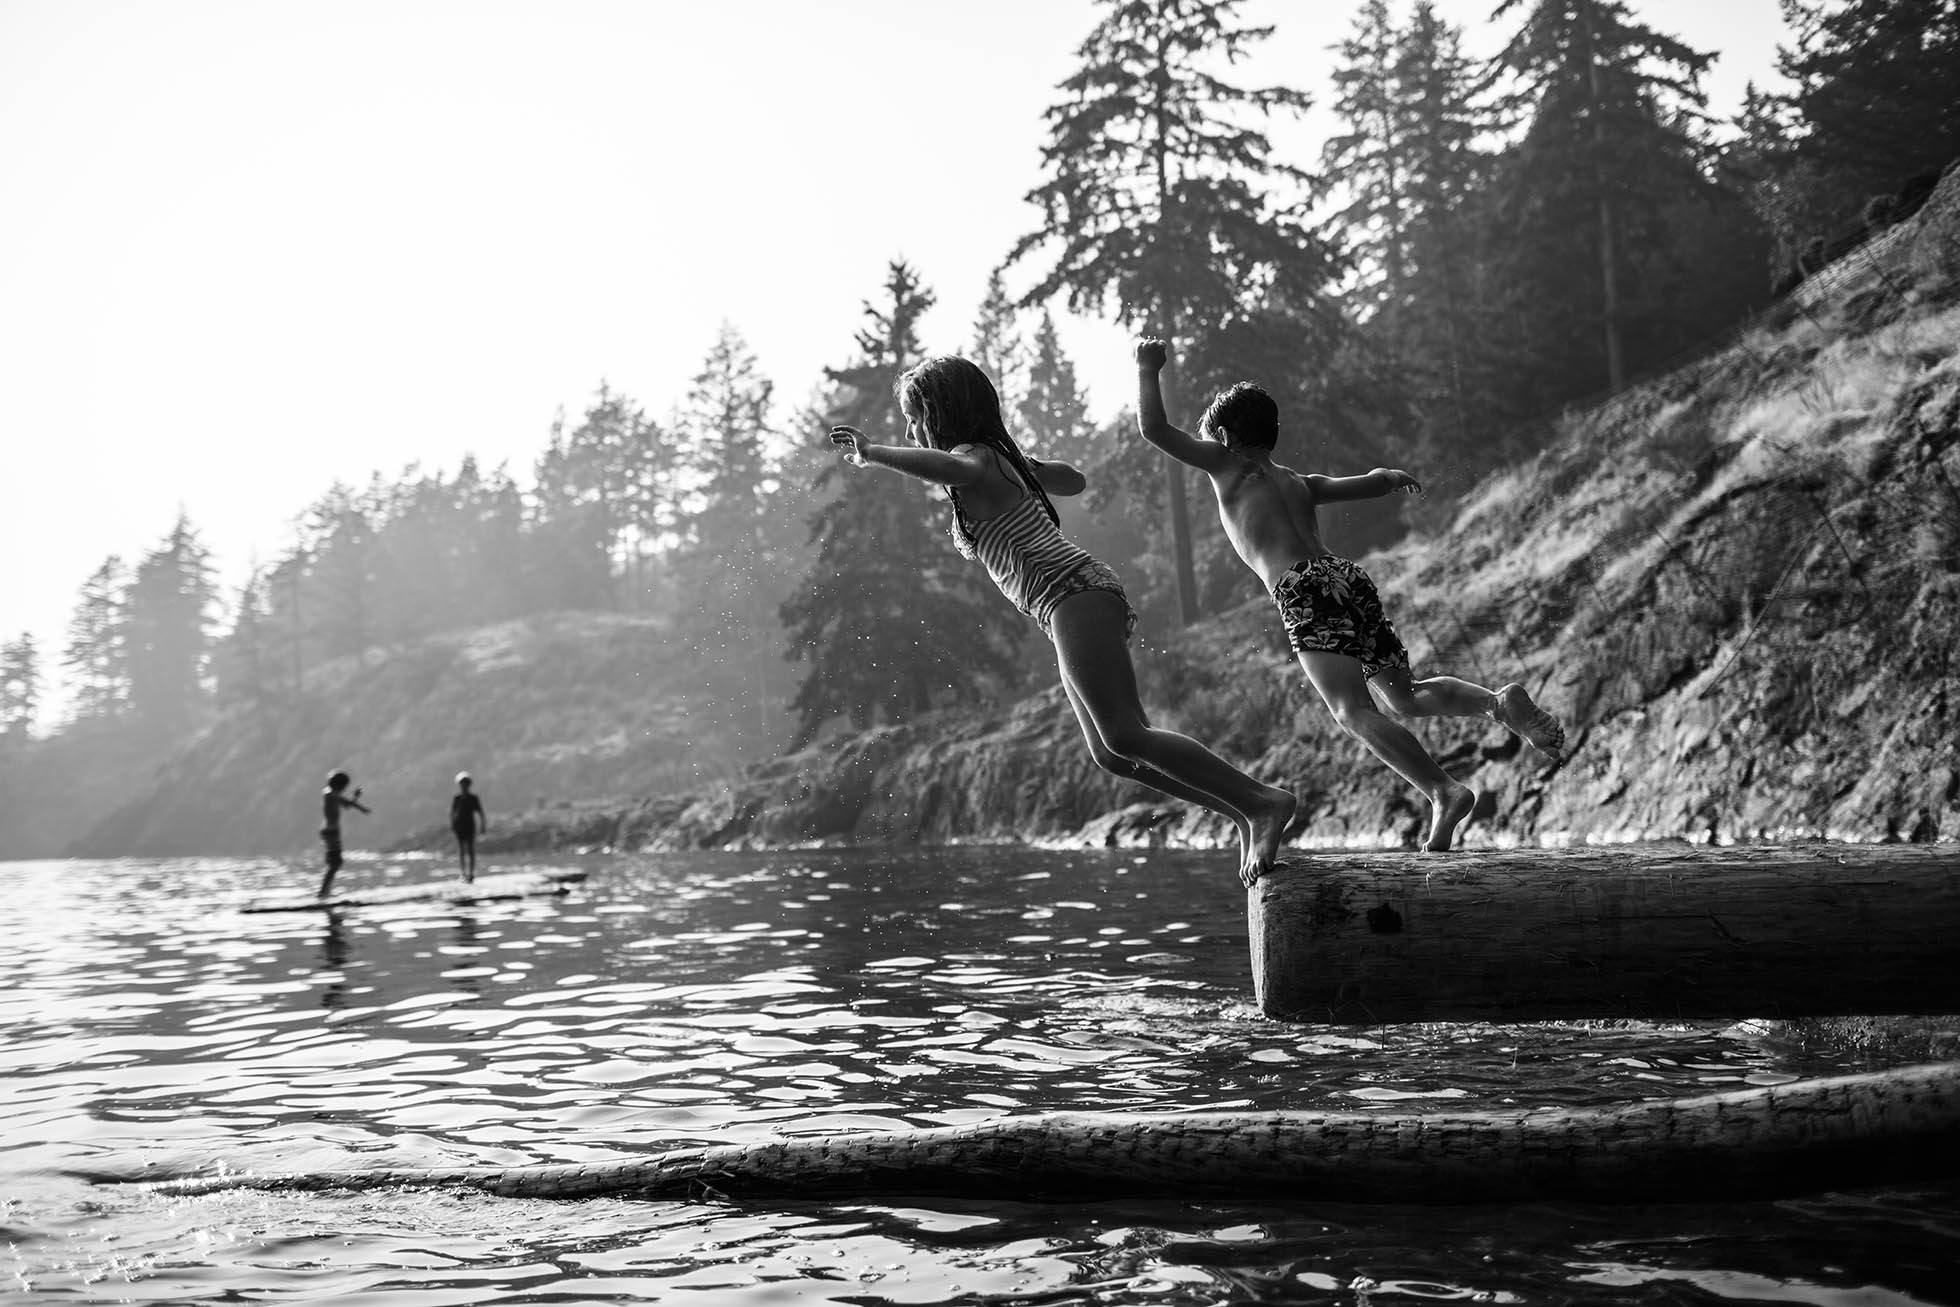 Siblings captured mid-jump while playing on the logs that washed up into an island cove British Columbia, Canada.